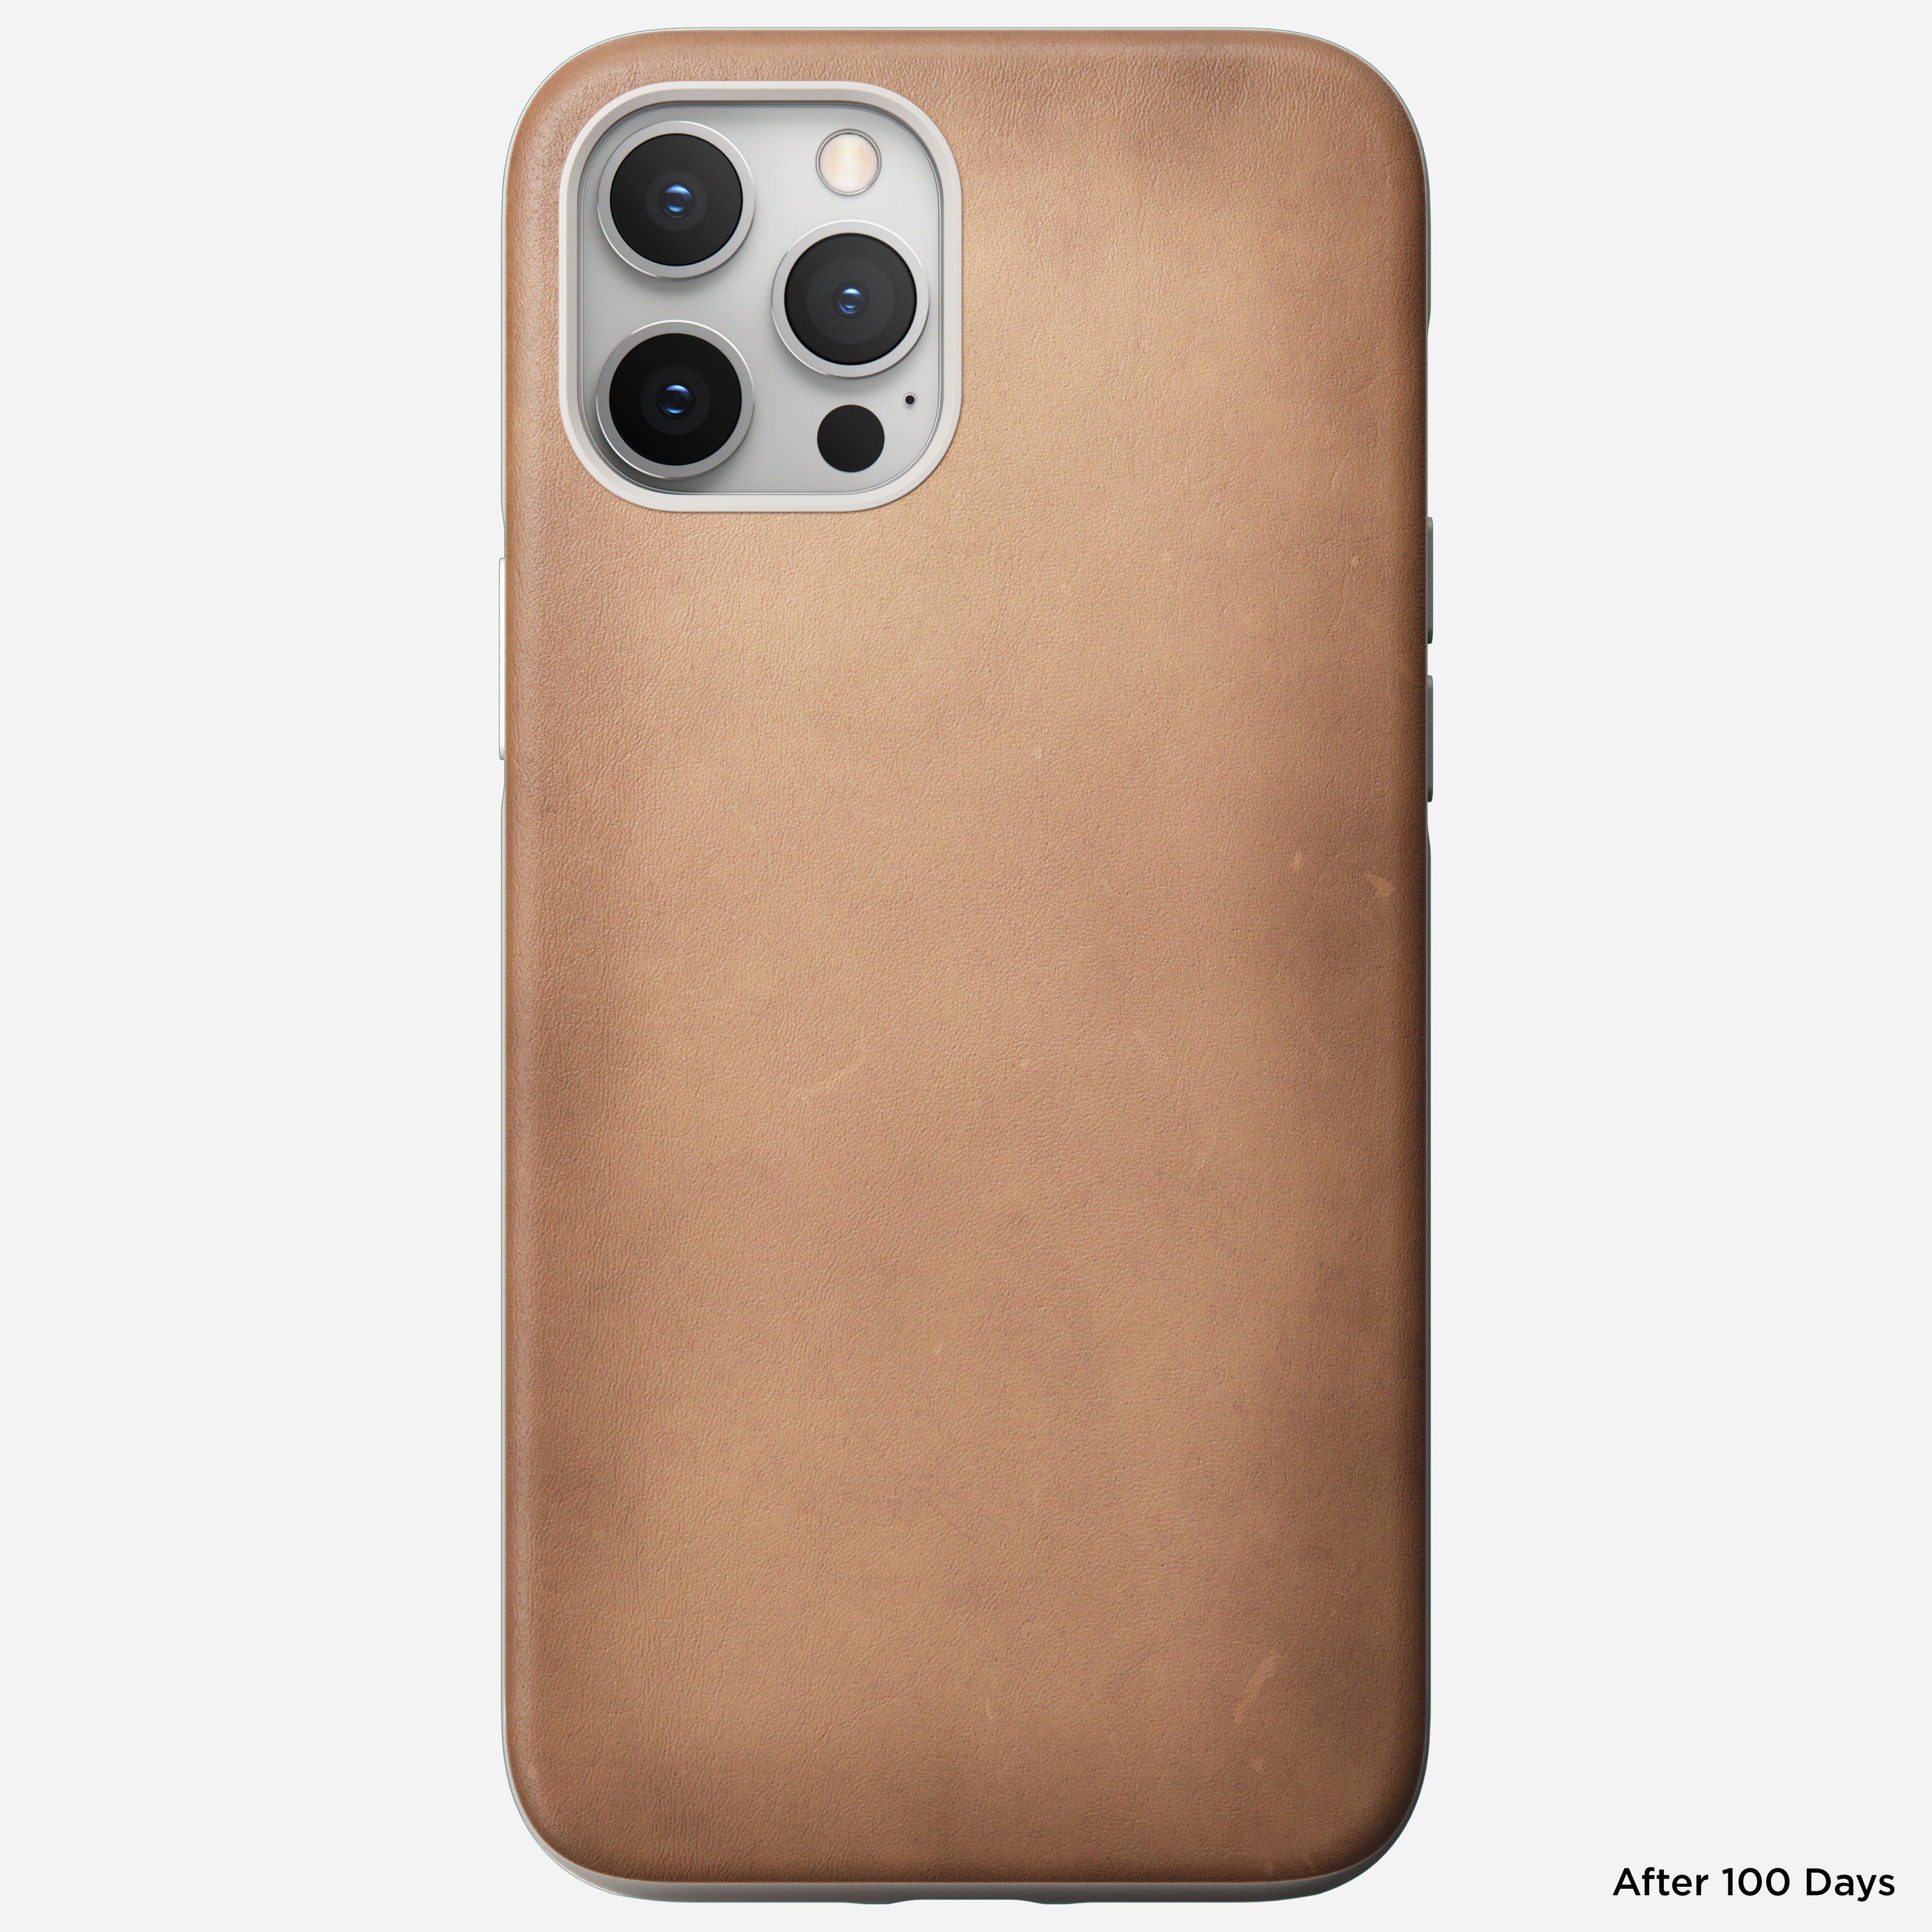 Rugged case horween leather natural iphone 12 pro max